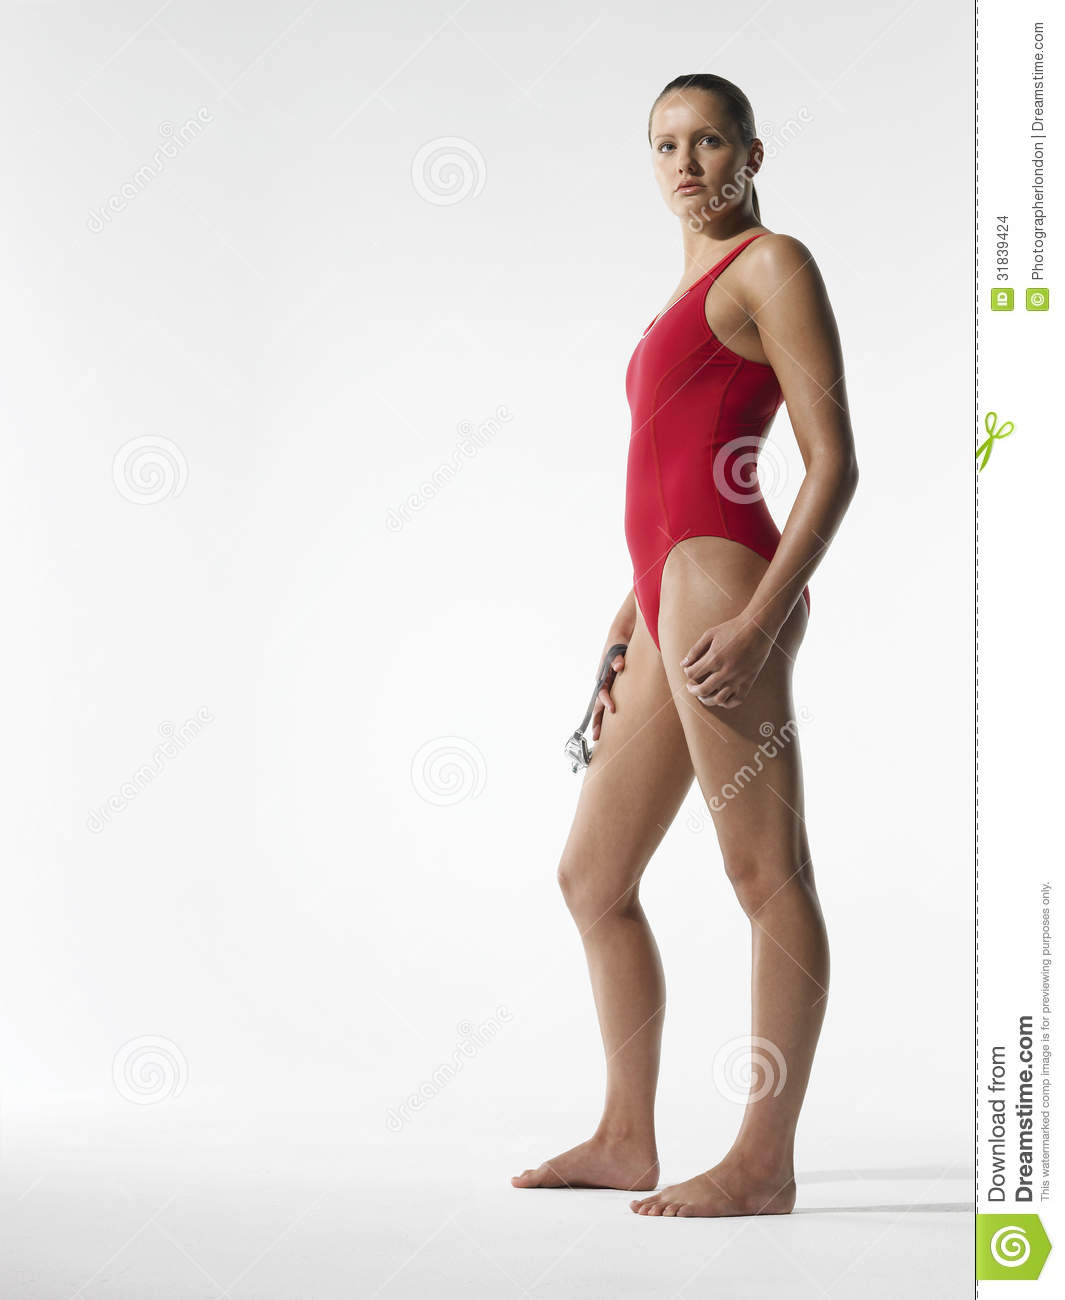 7709df45f330f Full length side view of a young female swimmer standing against white  background